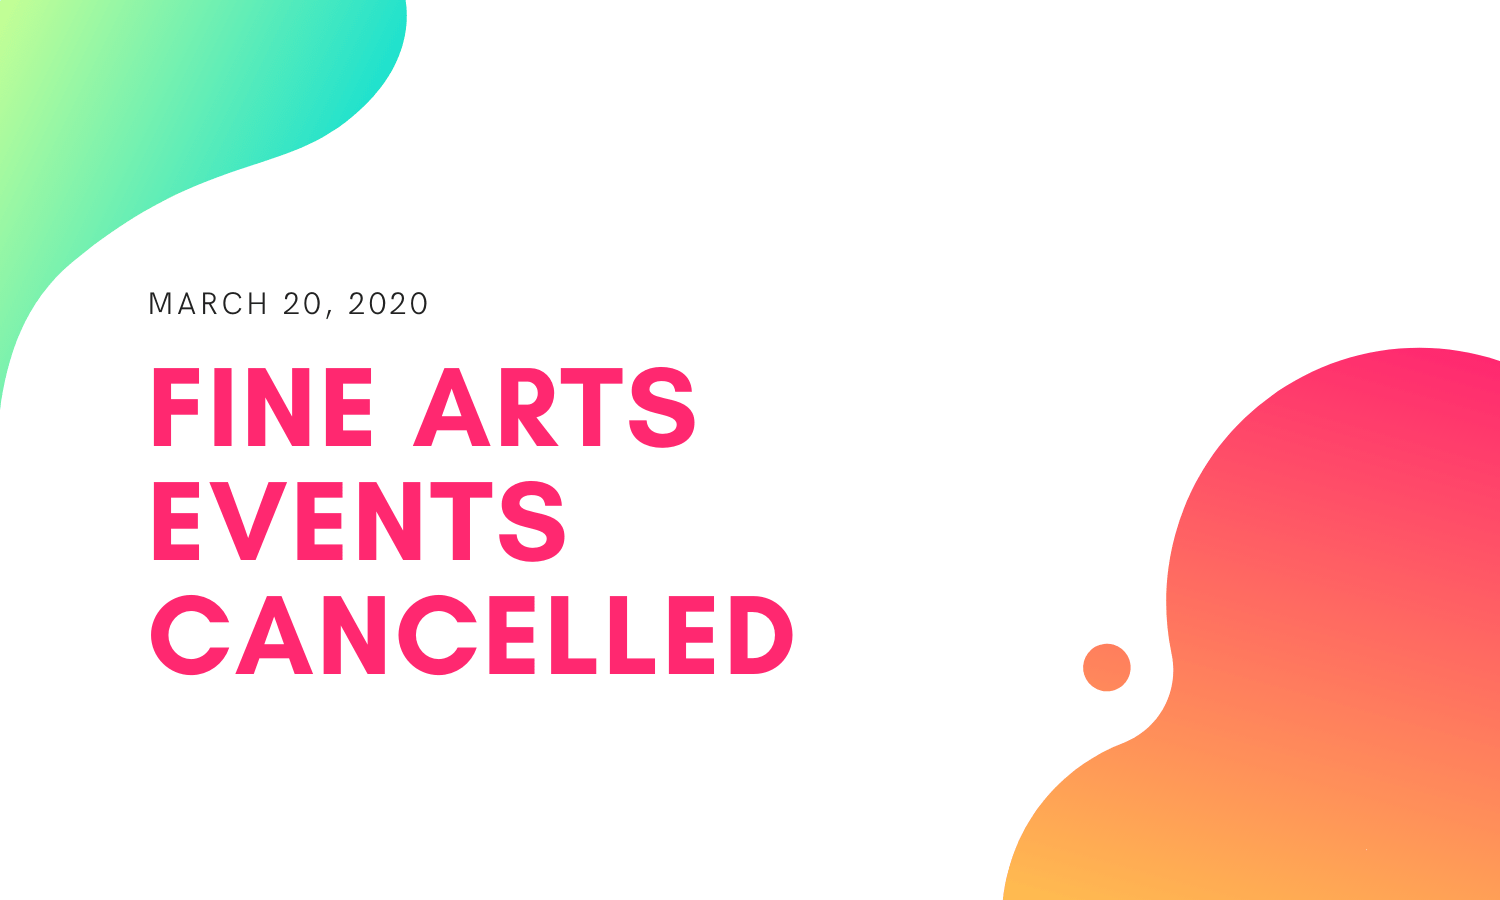 Fine Arts Events CANCELLED through April 3rd